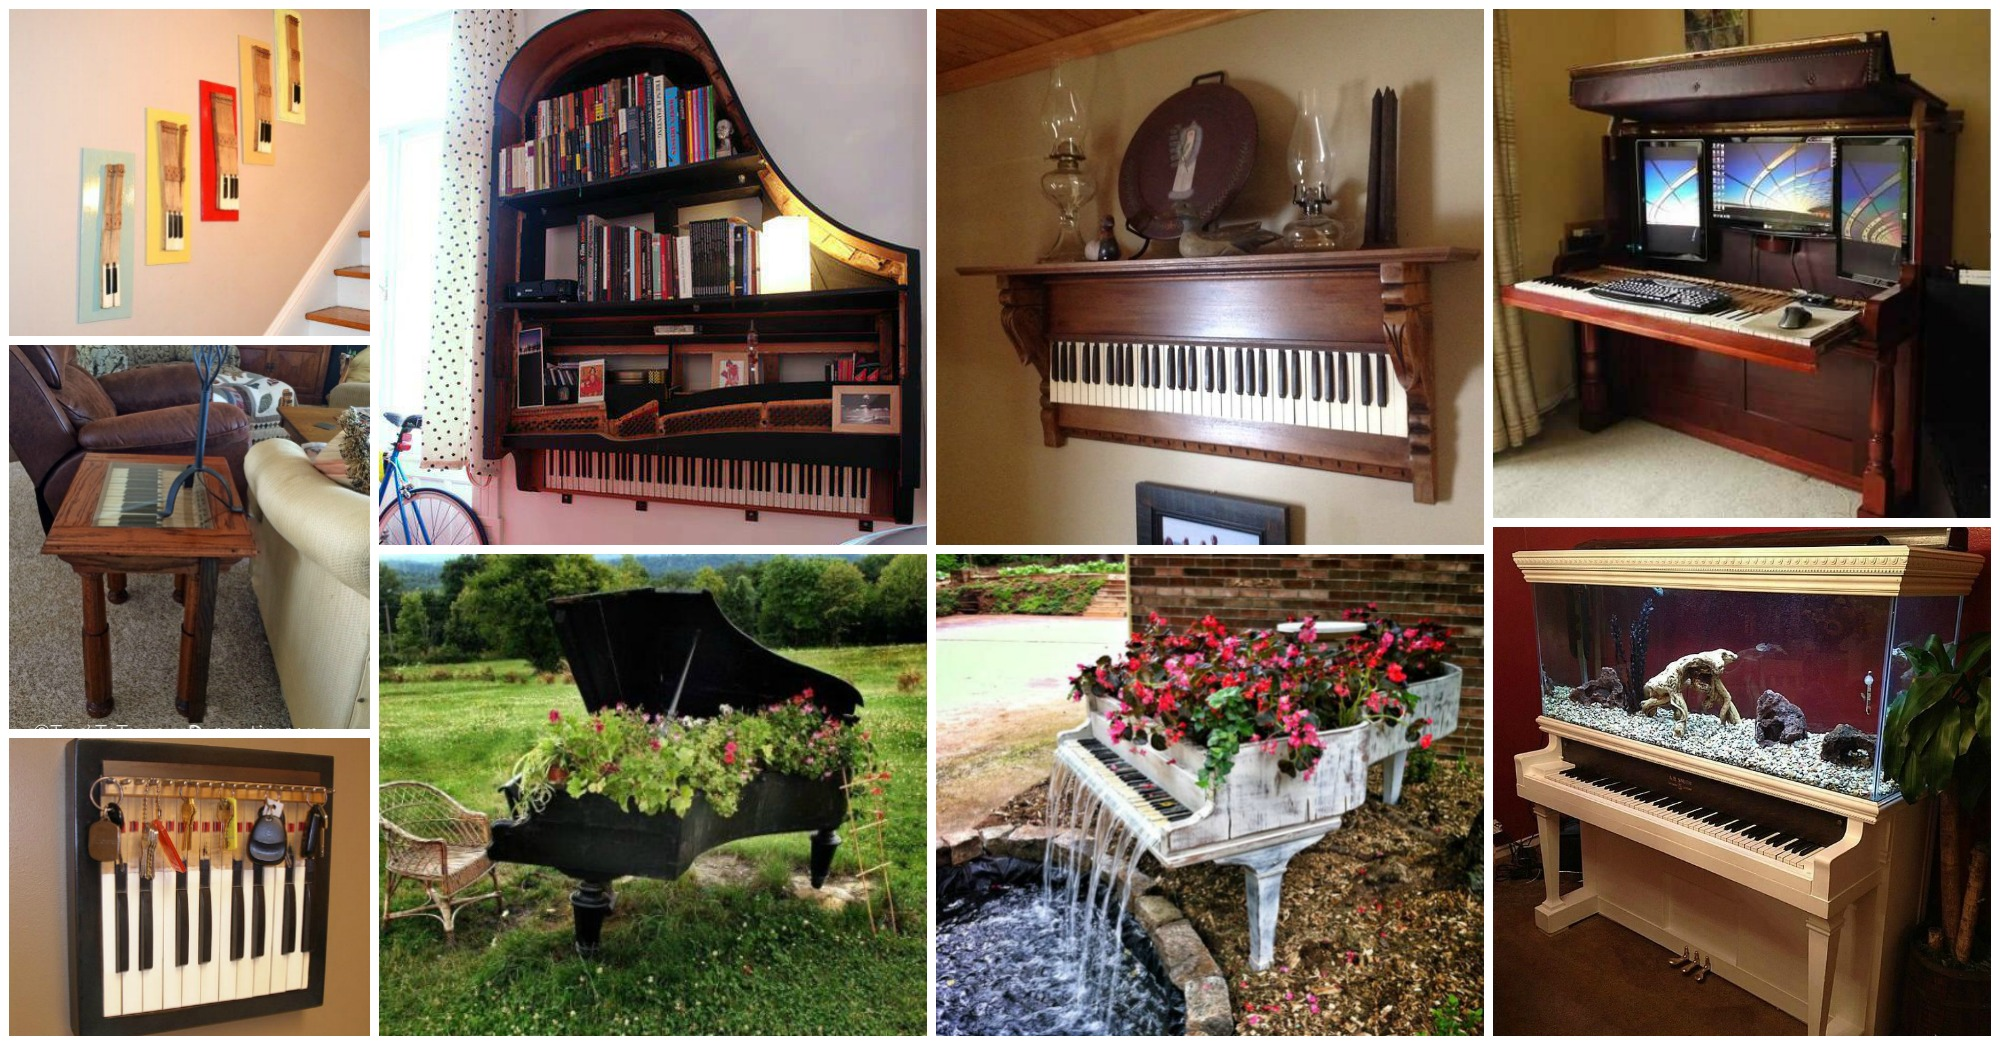 20 Inventive and Very Creative DIY Ideas to Repurpose Old Pianos